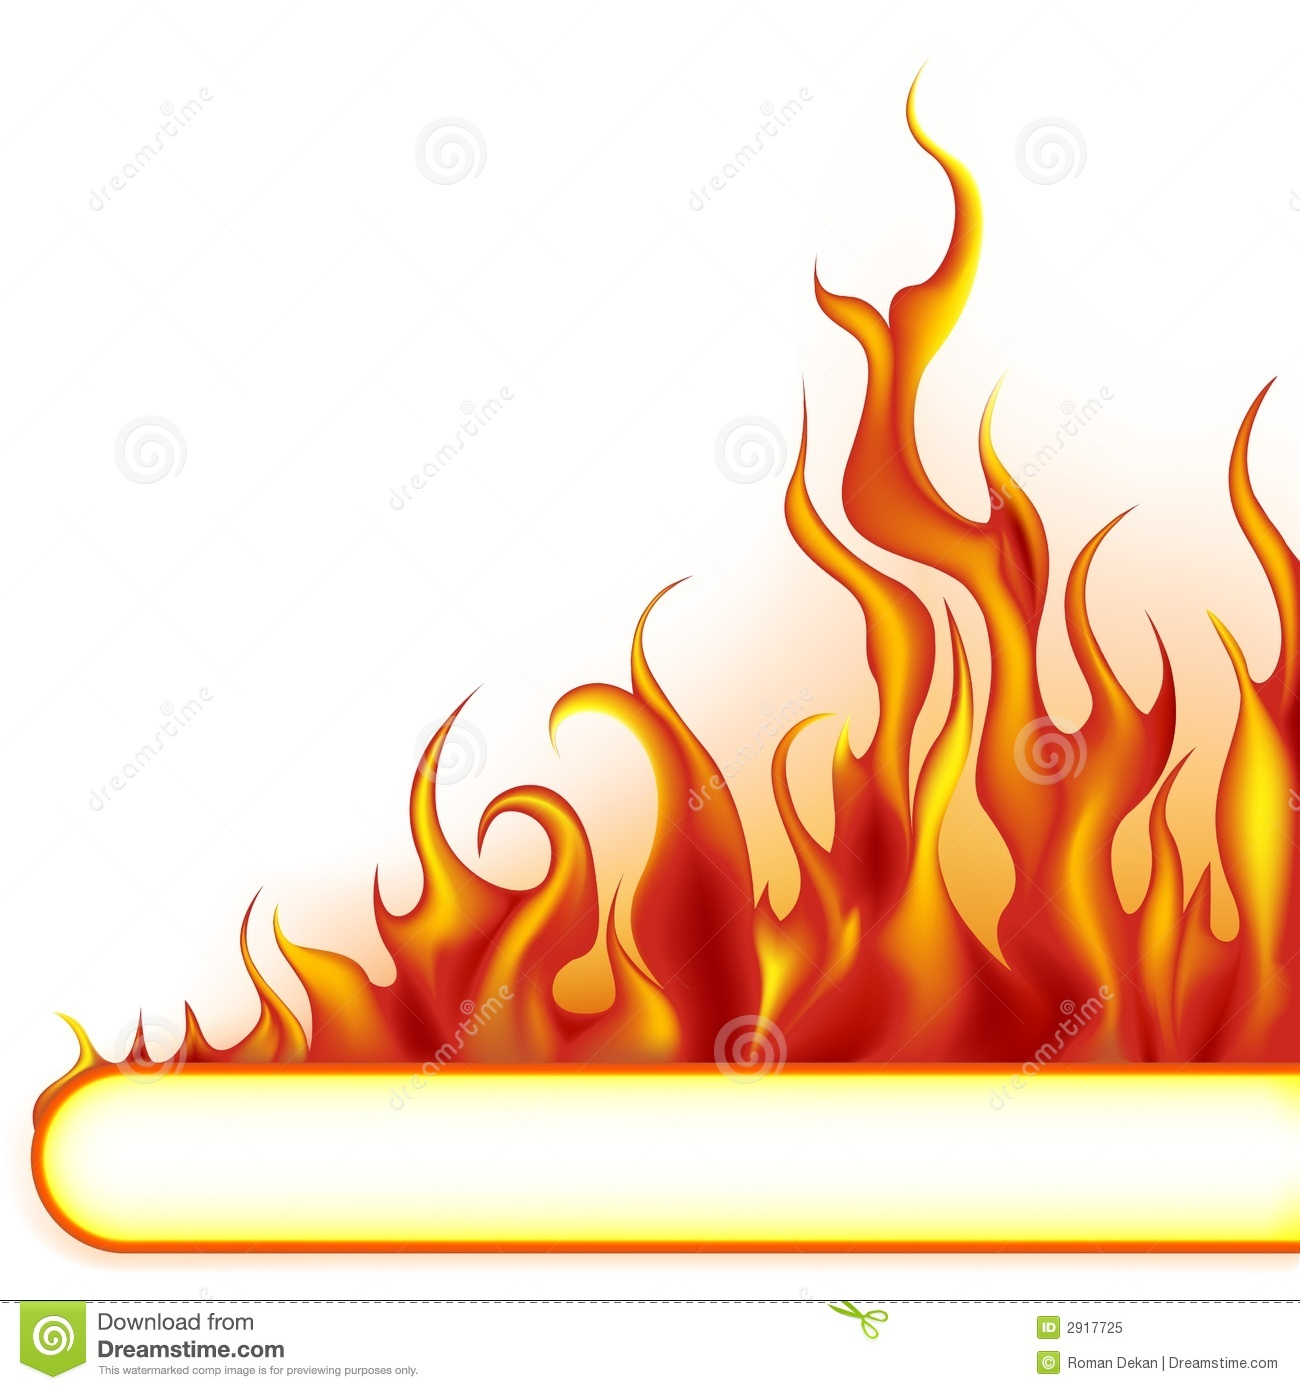 Fire Border With White Background | Clipart Panda - Free ...